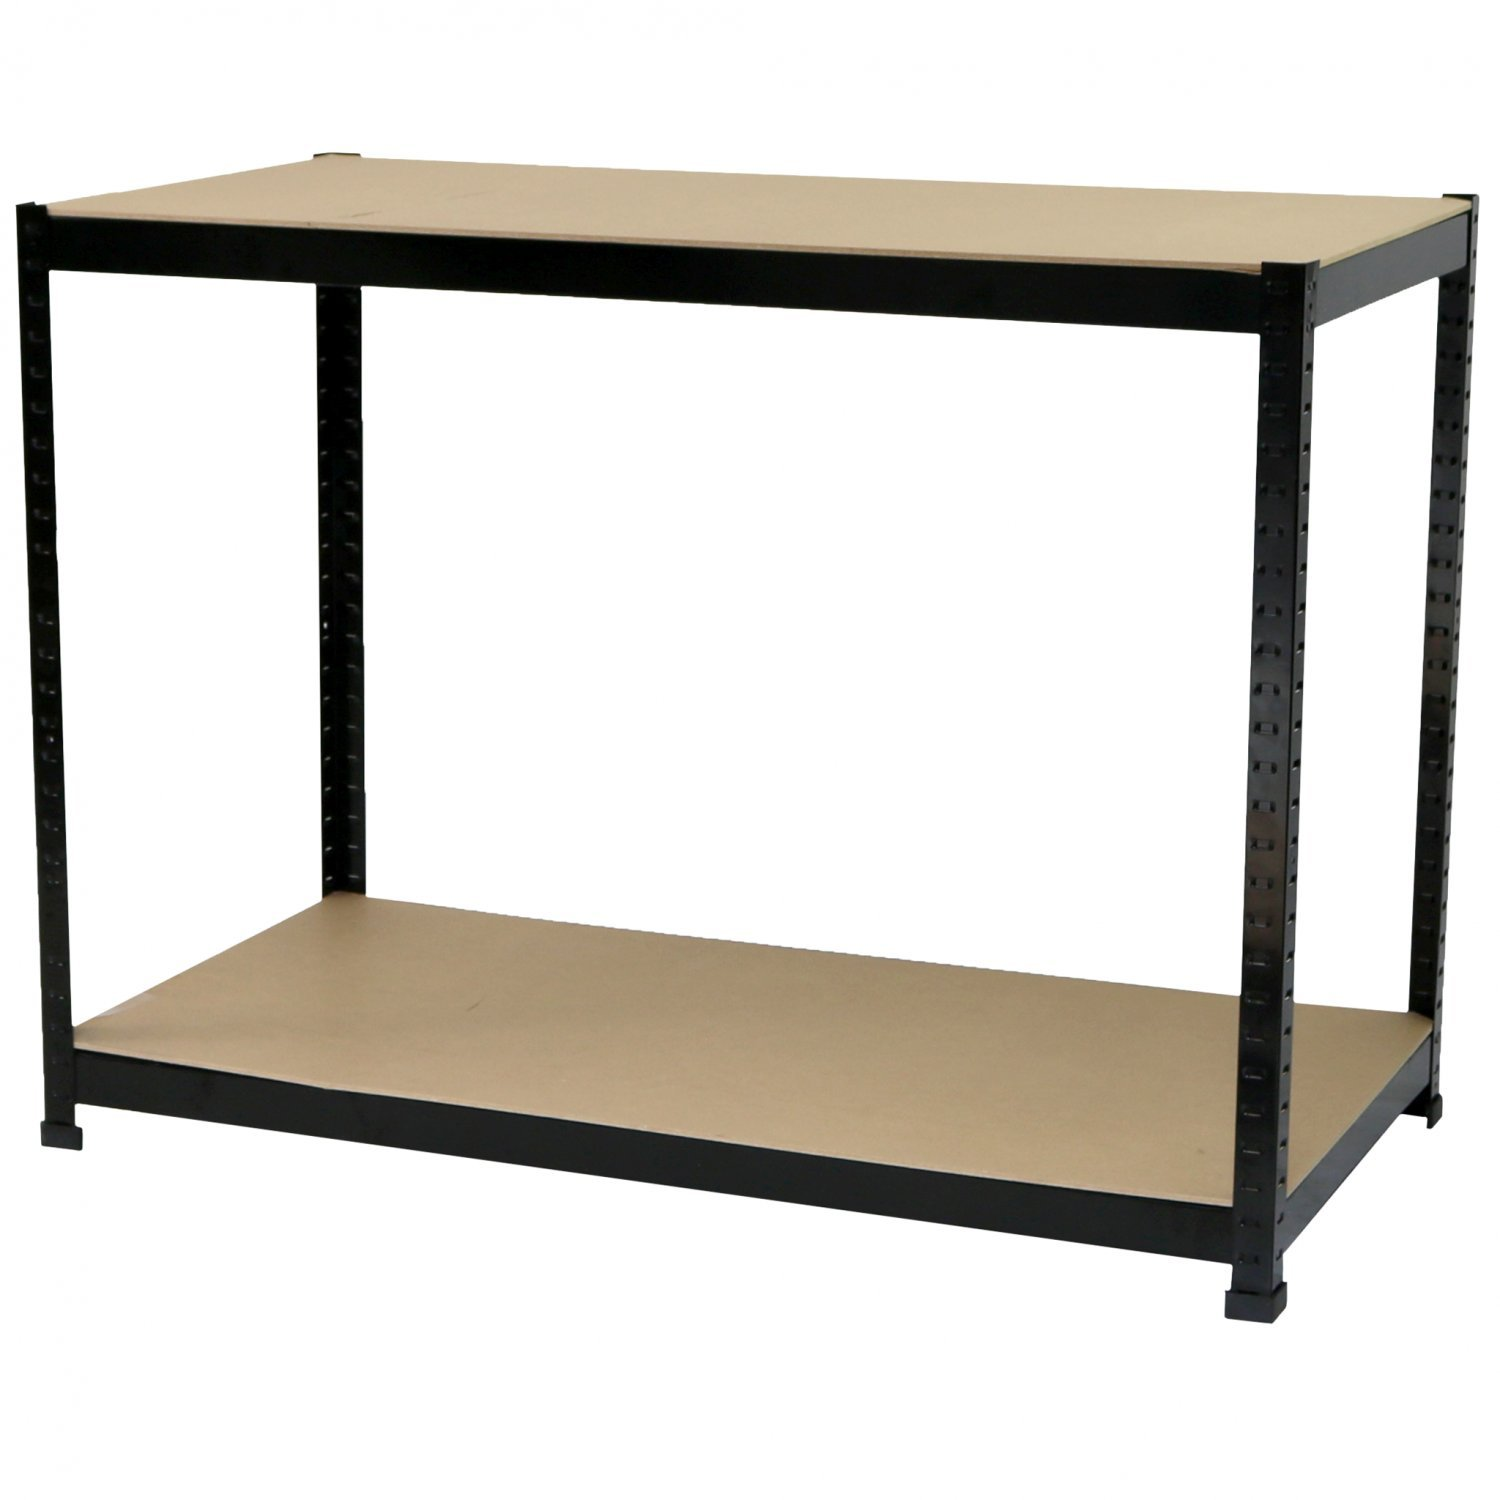 Industrial Heavy Duty Steel Workbench Table Shelving